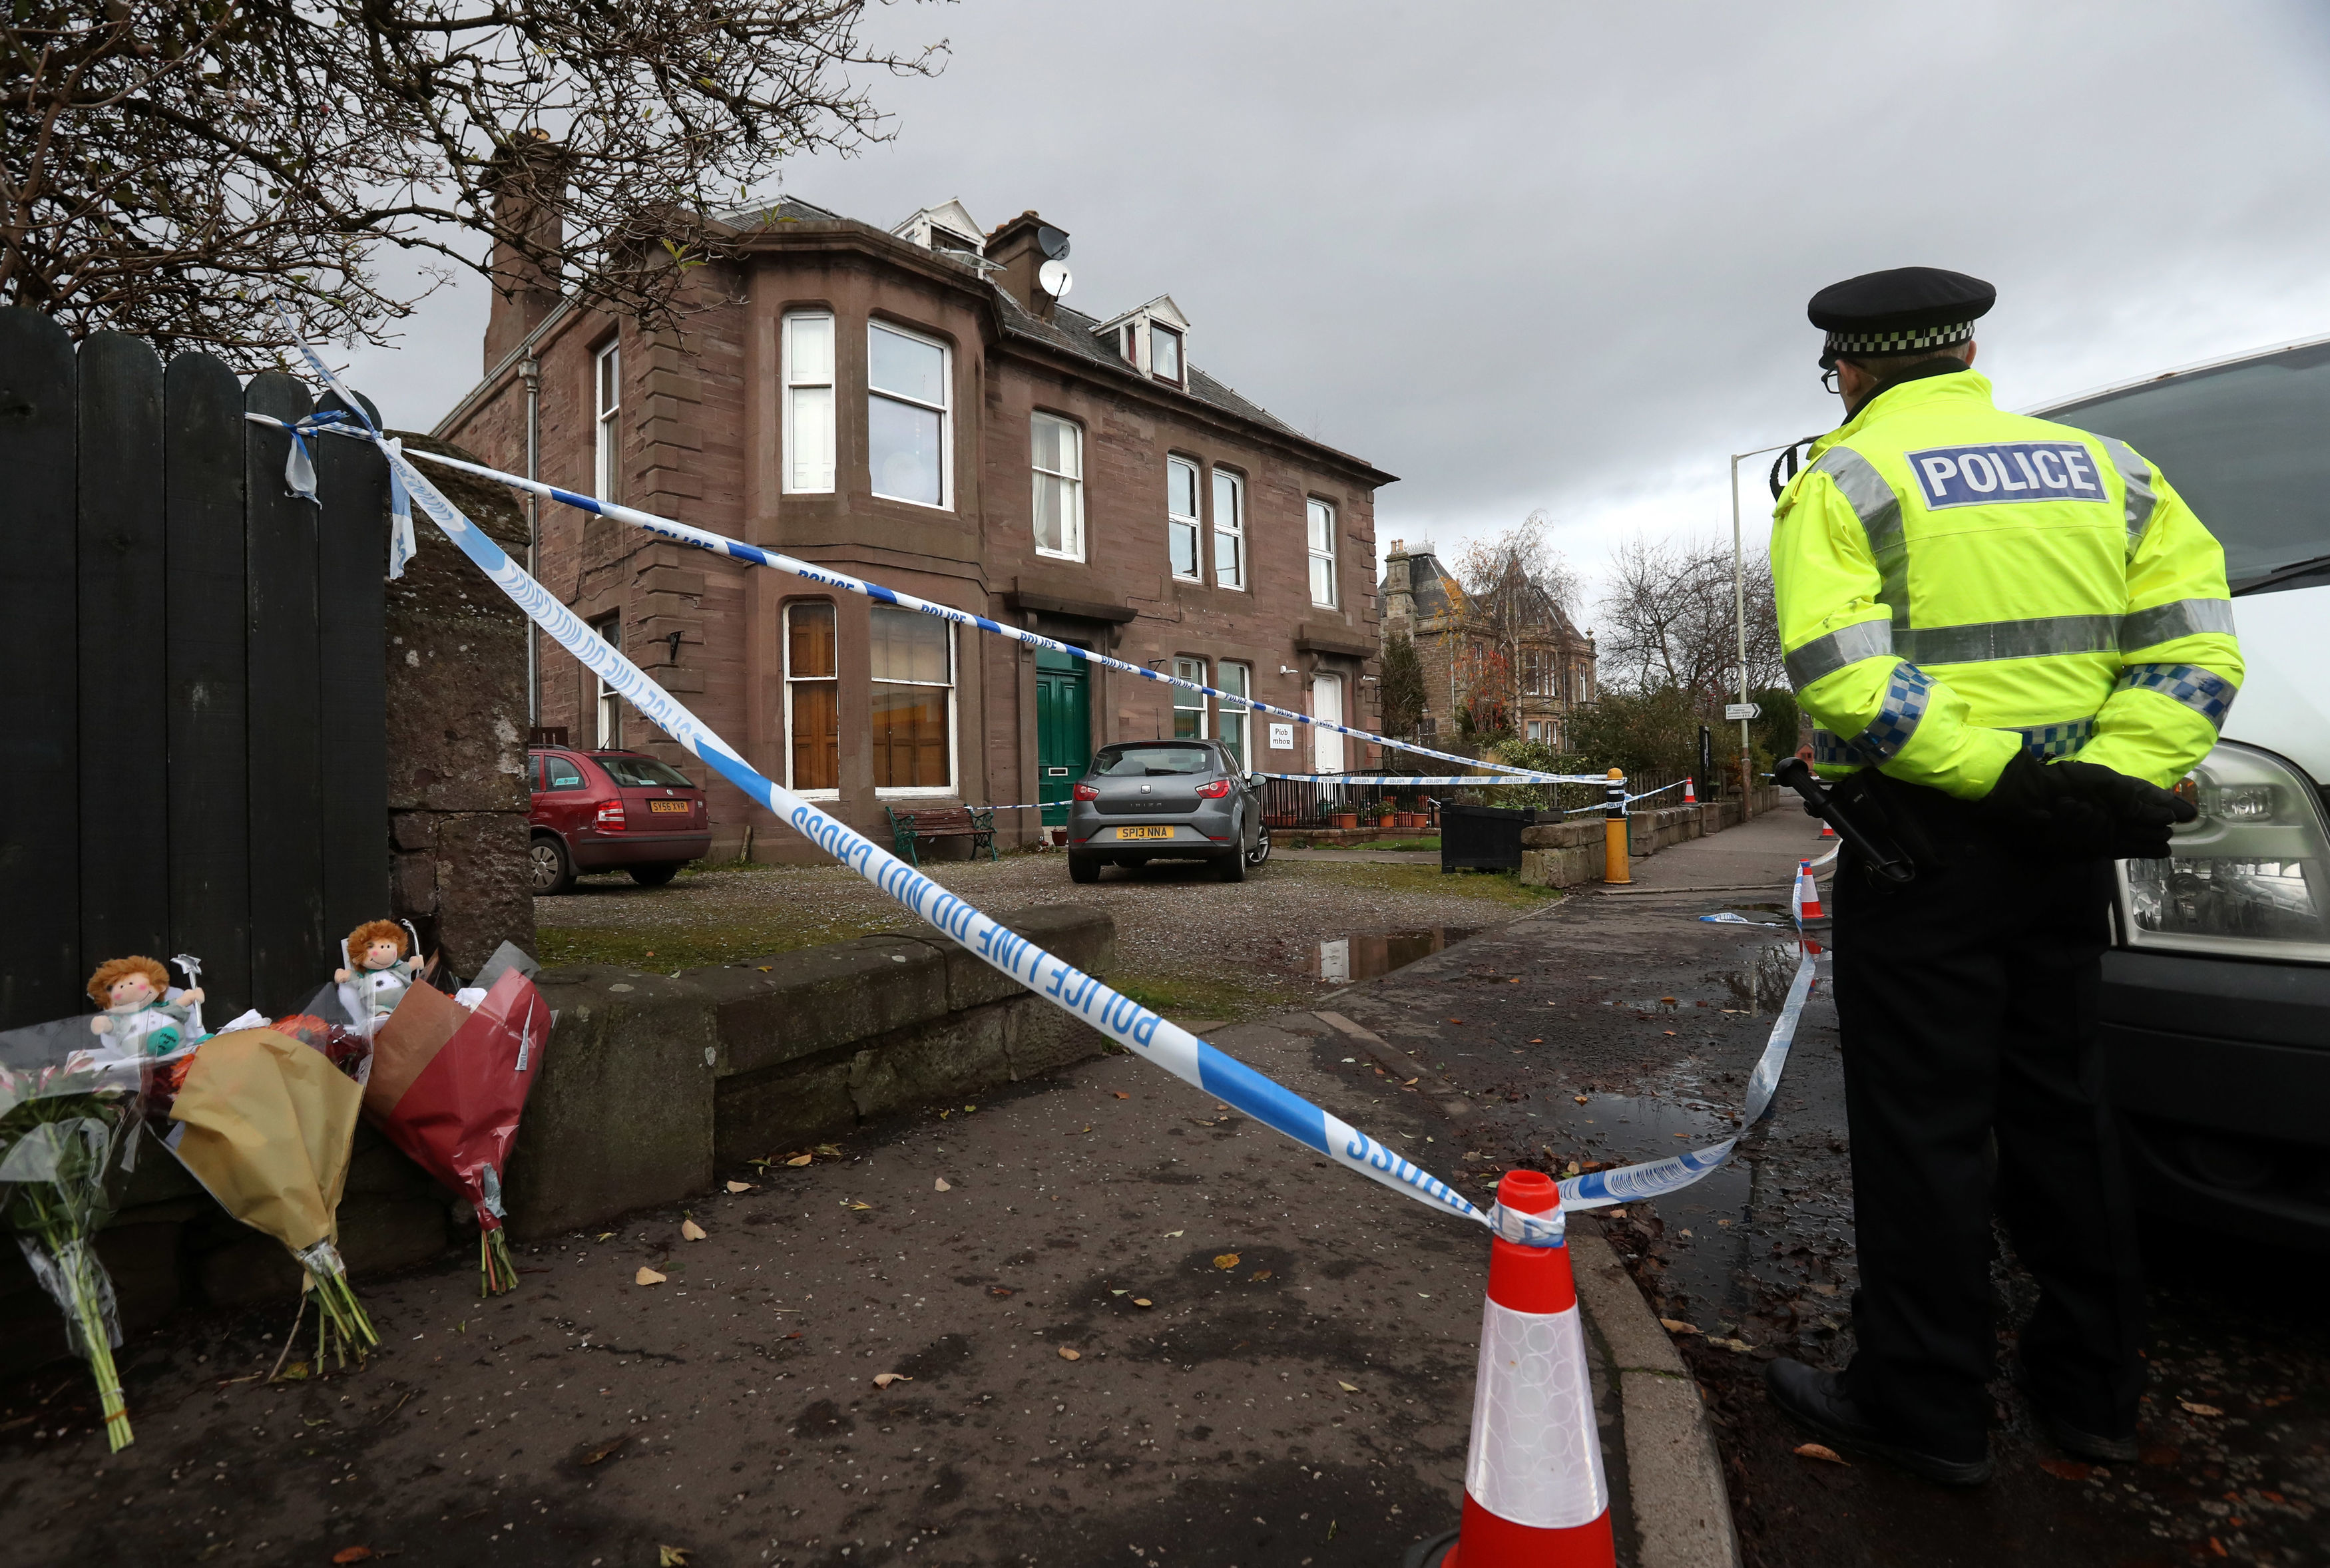 Police at the scene in Coupar Angus.